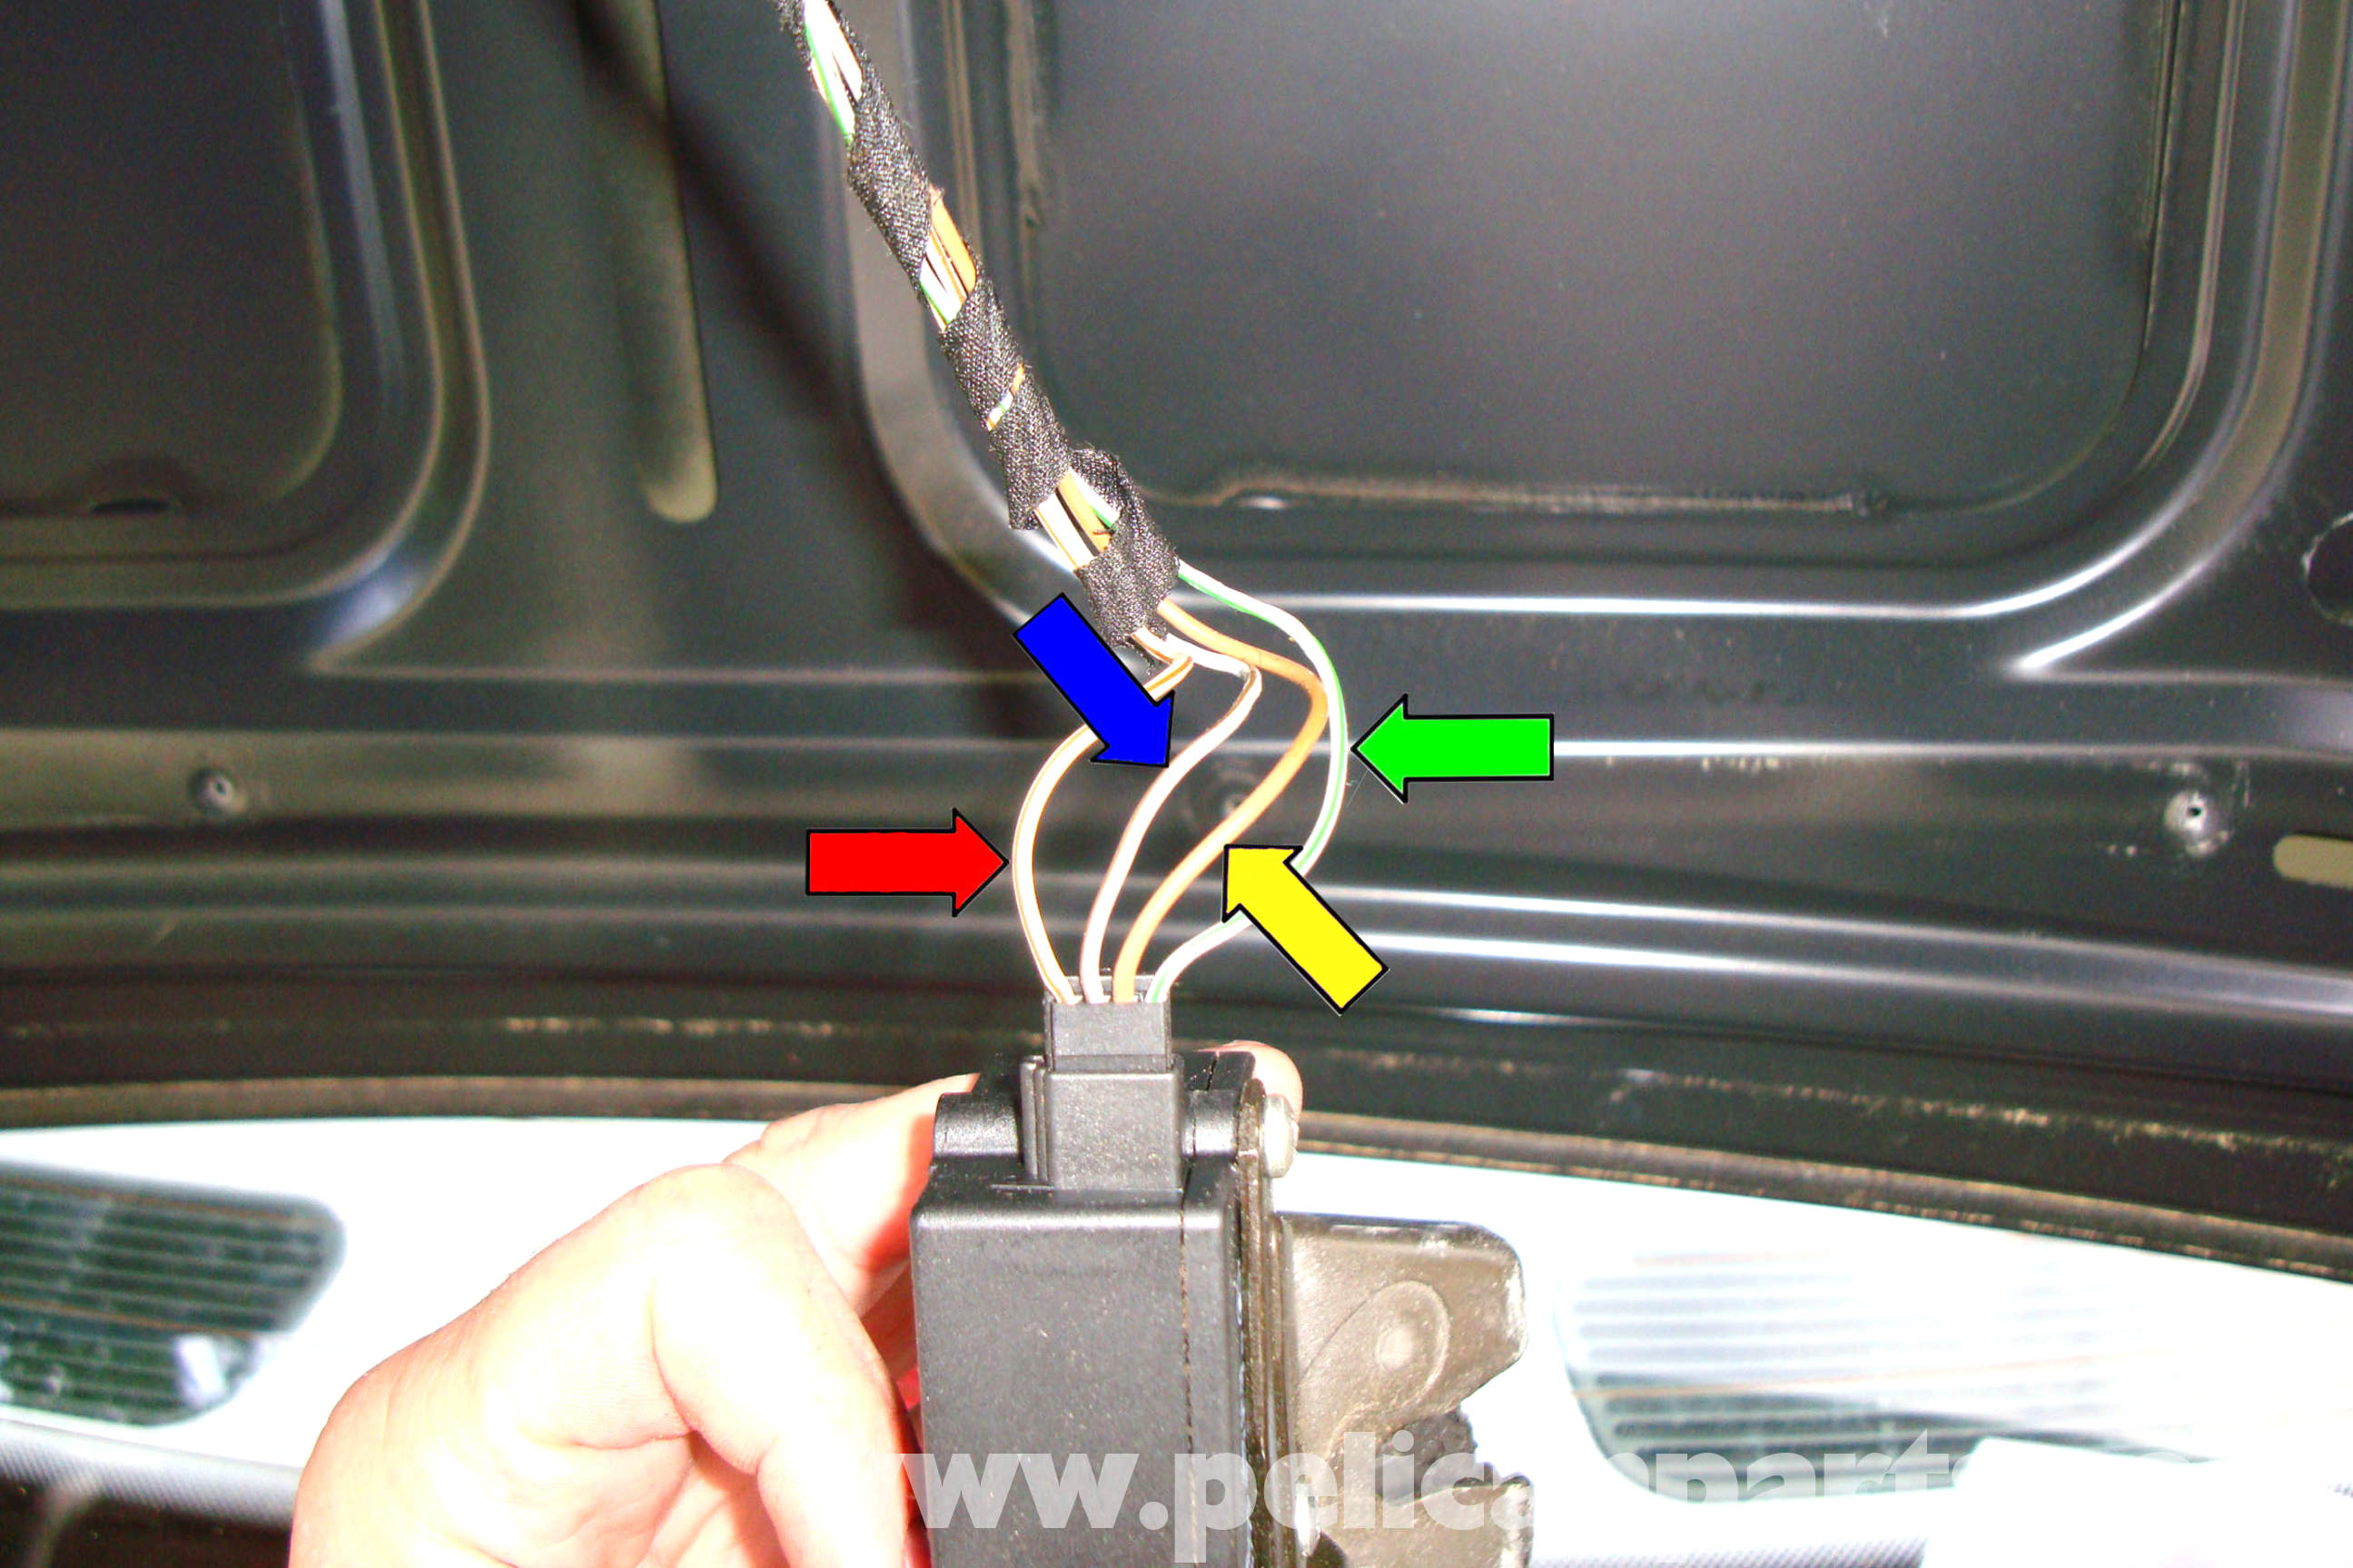 bmw e39 5 series trunk latch testing and replacement 1997 2003 large image extra large image